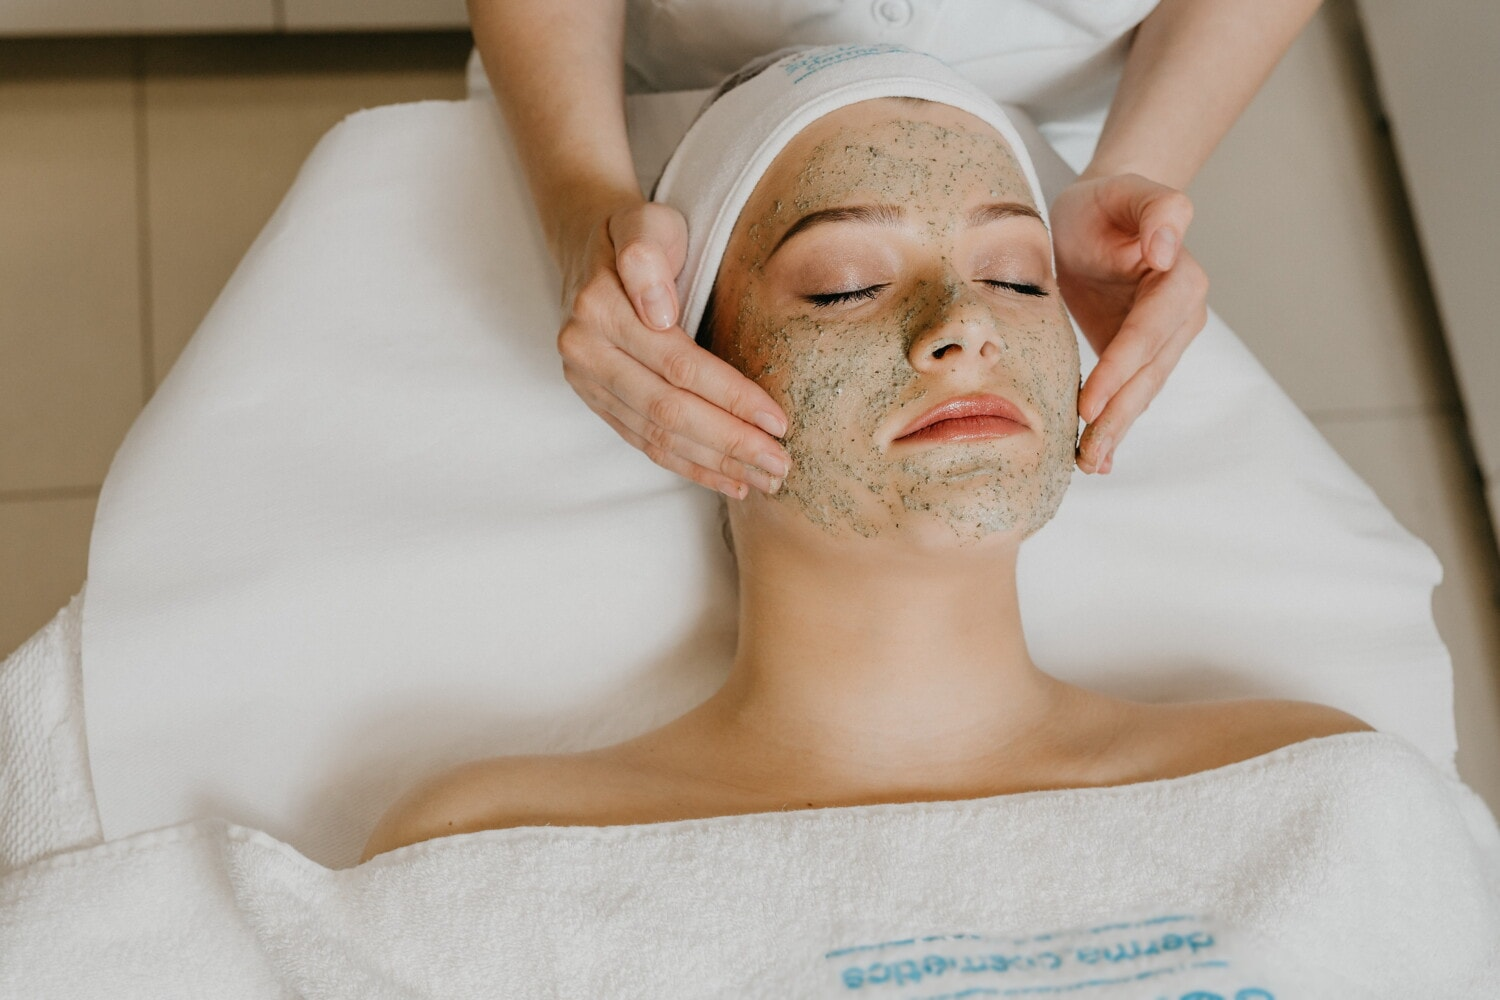 pretty girl, spa center, massage, face, beautician, wellness, facial, therapeutic, therapy, lying down